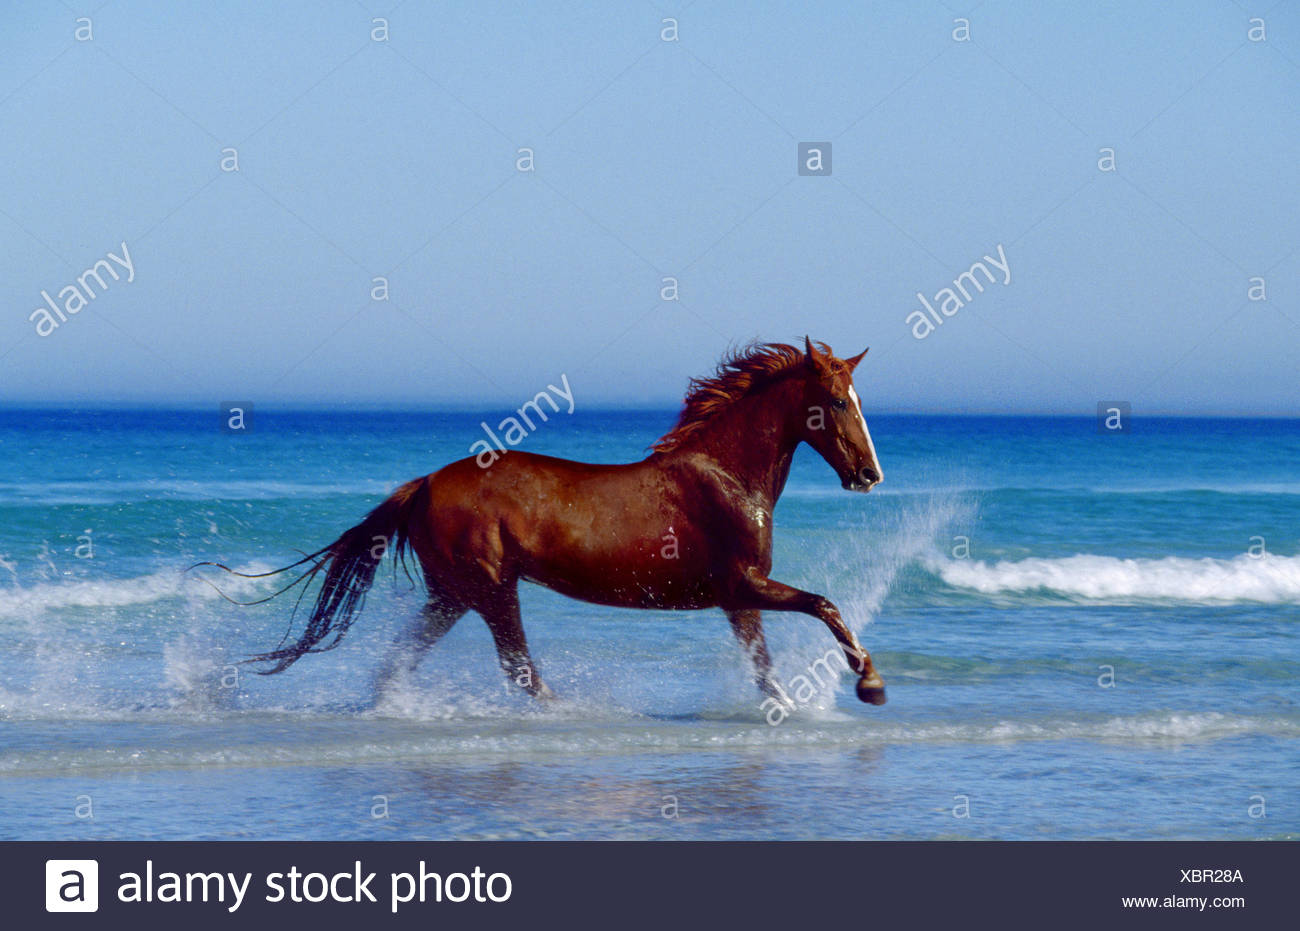 adult galloping on the beach stock photos amp adult